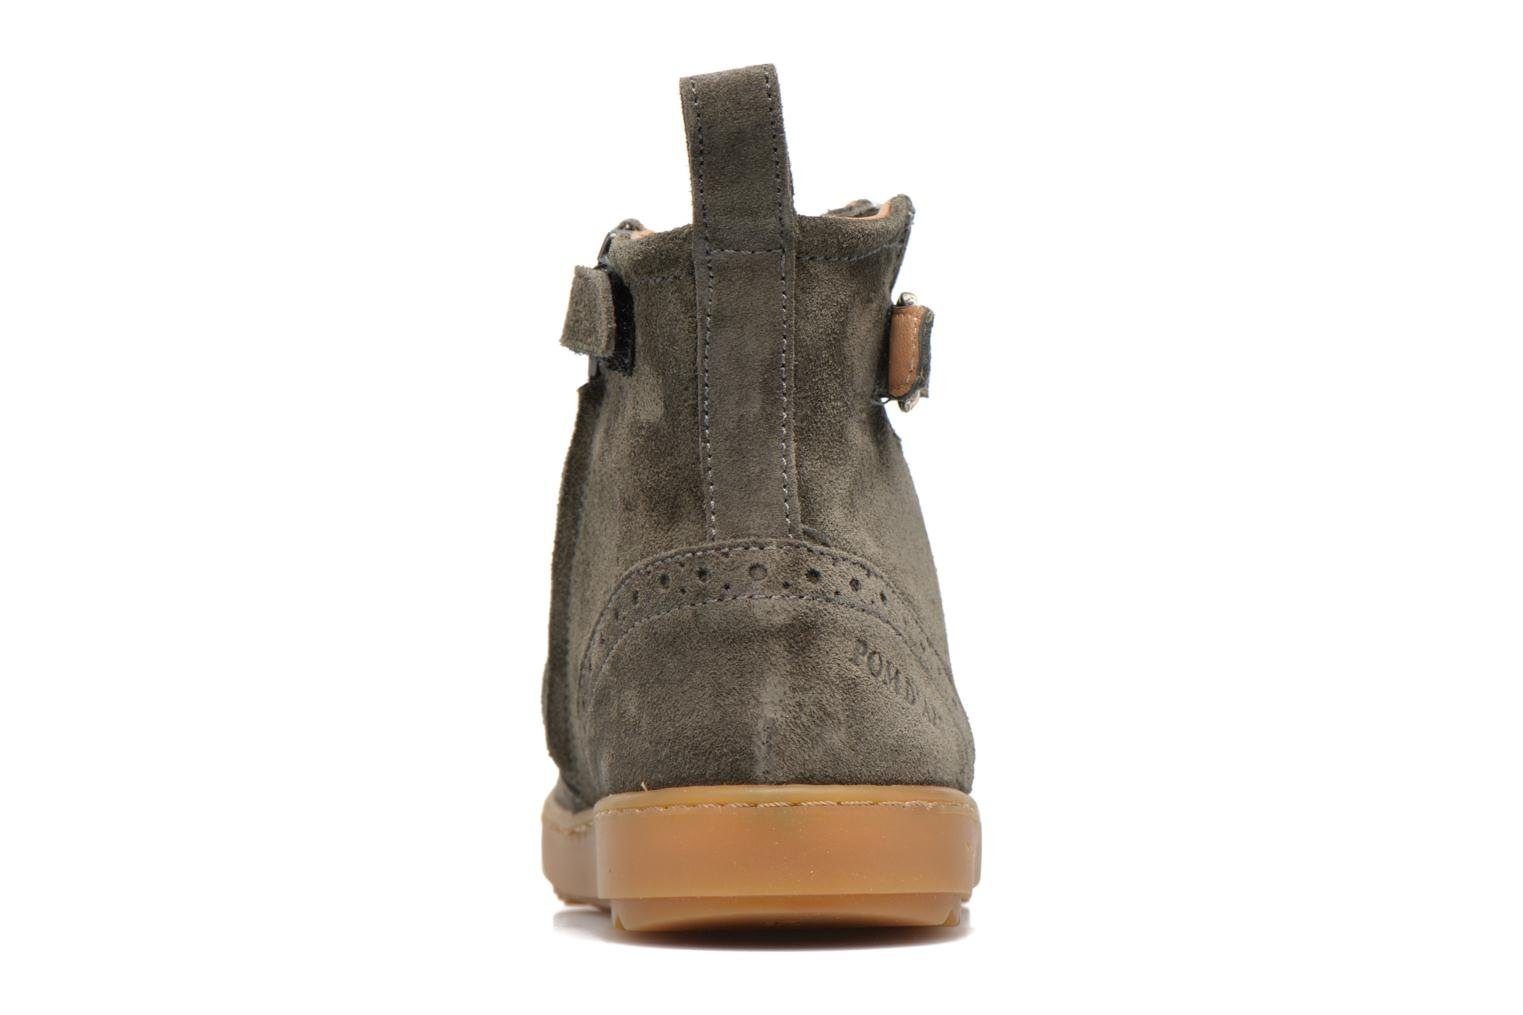 Wouf Boots Velours Army